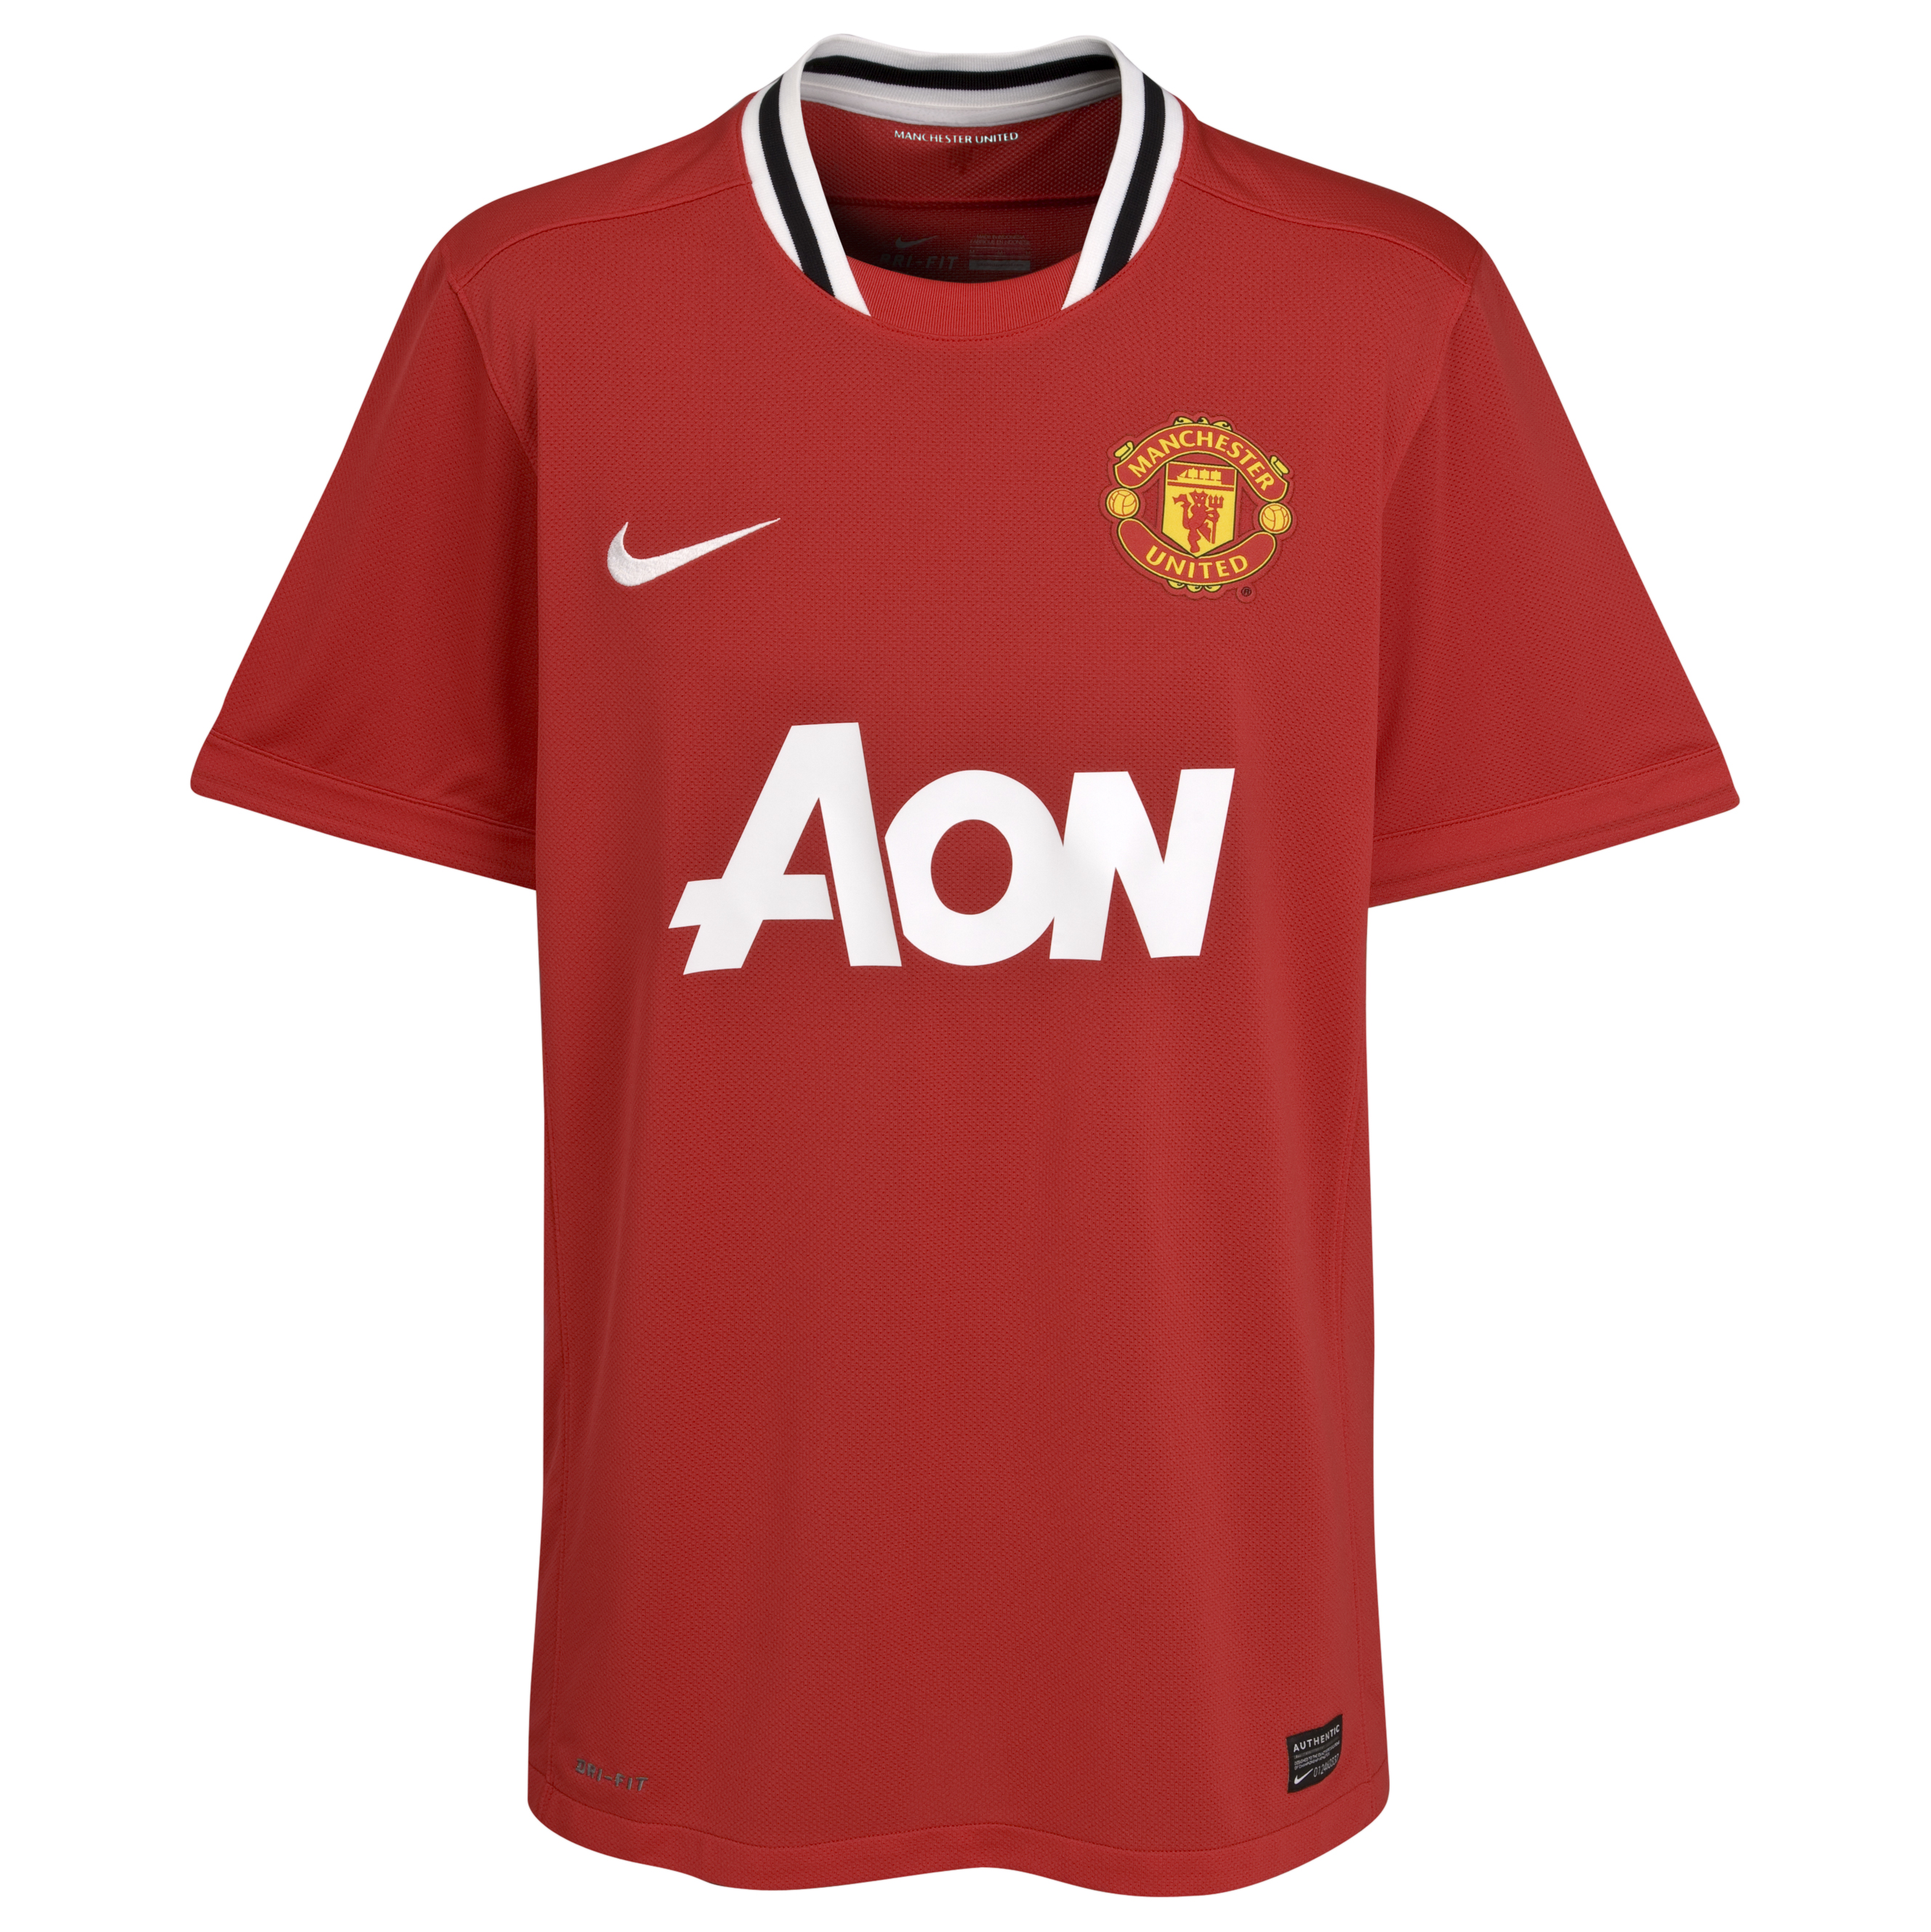 Manchester United Home Shirt 2011/12